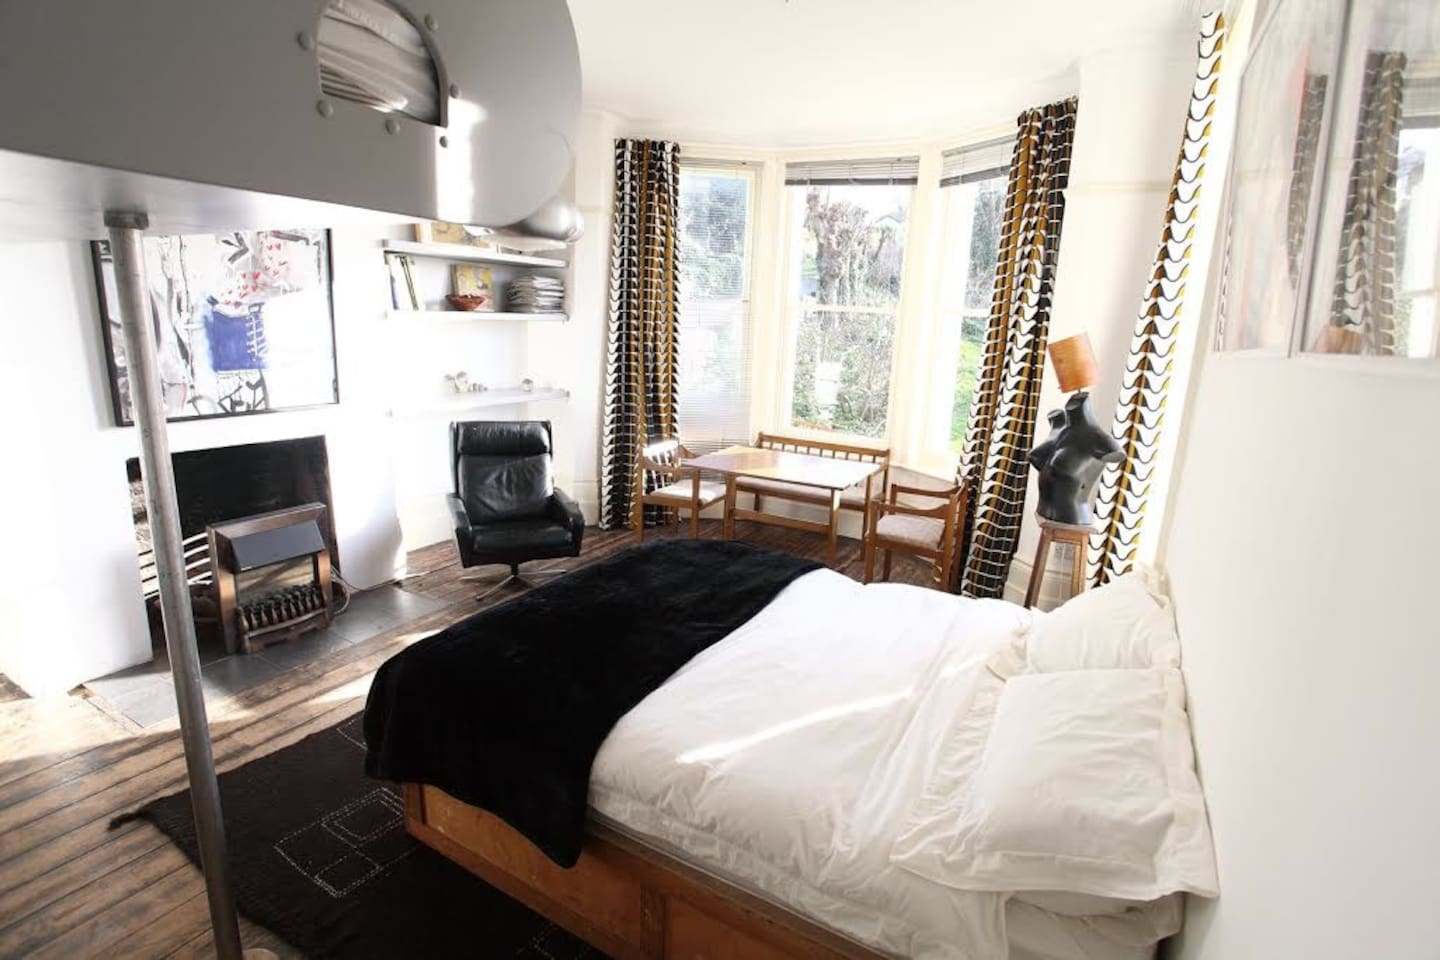 Large double bed, further sleeping for 2 adults or 2 over 5 yr old children just visible in top right hand corner of photo.